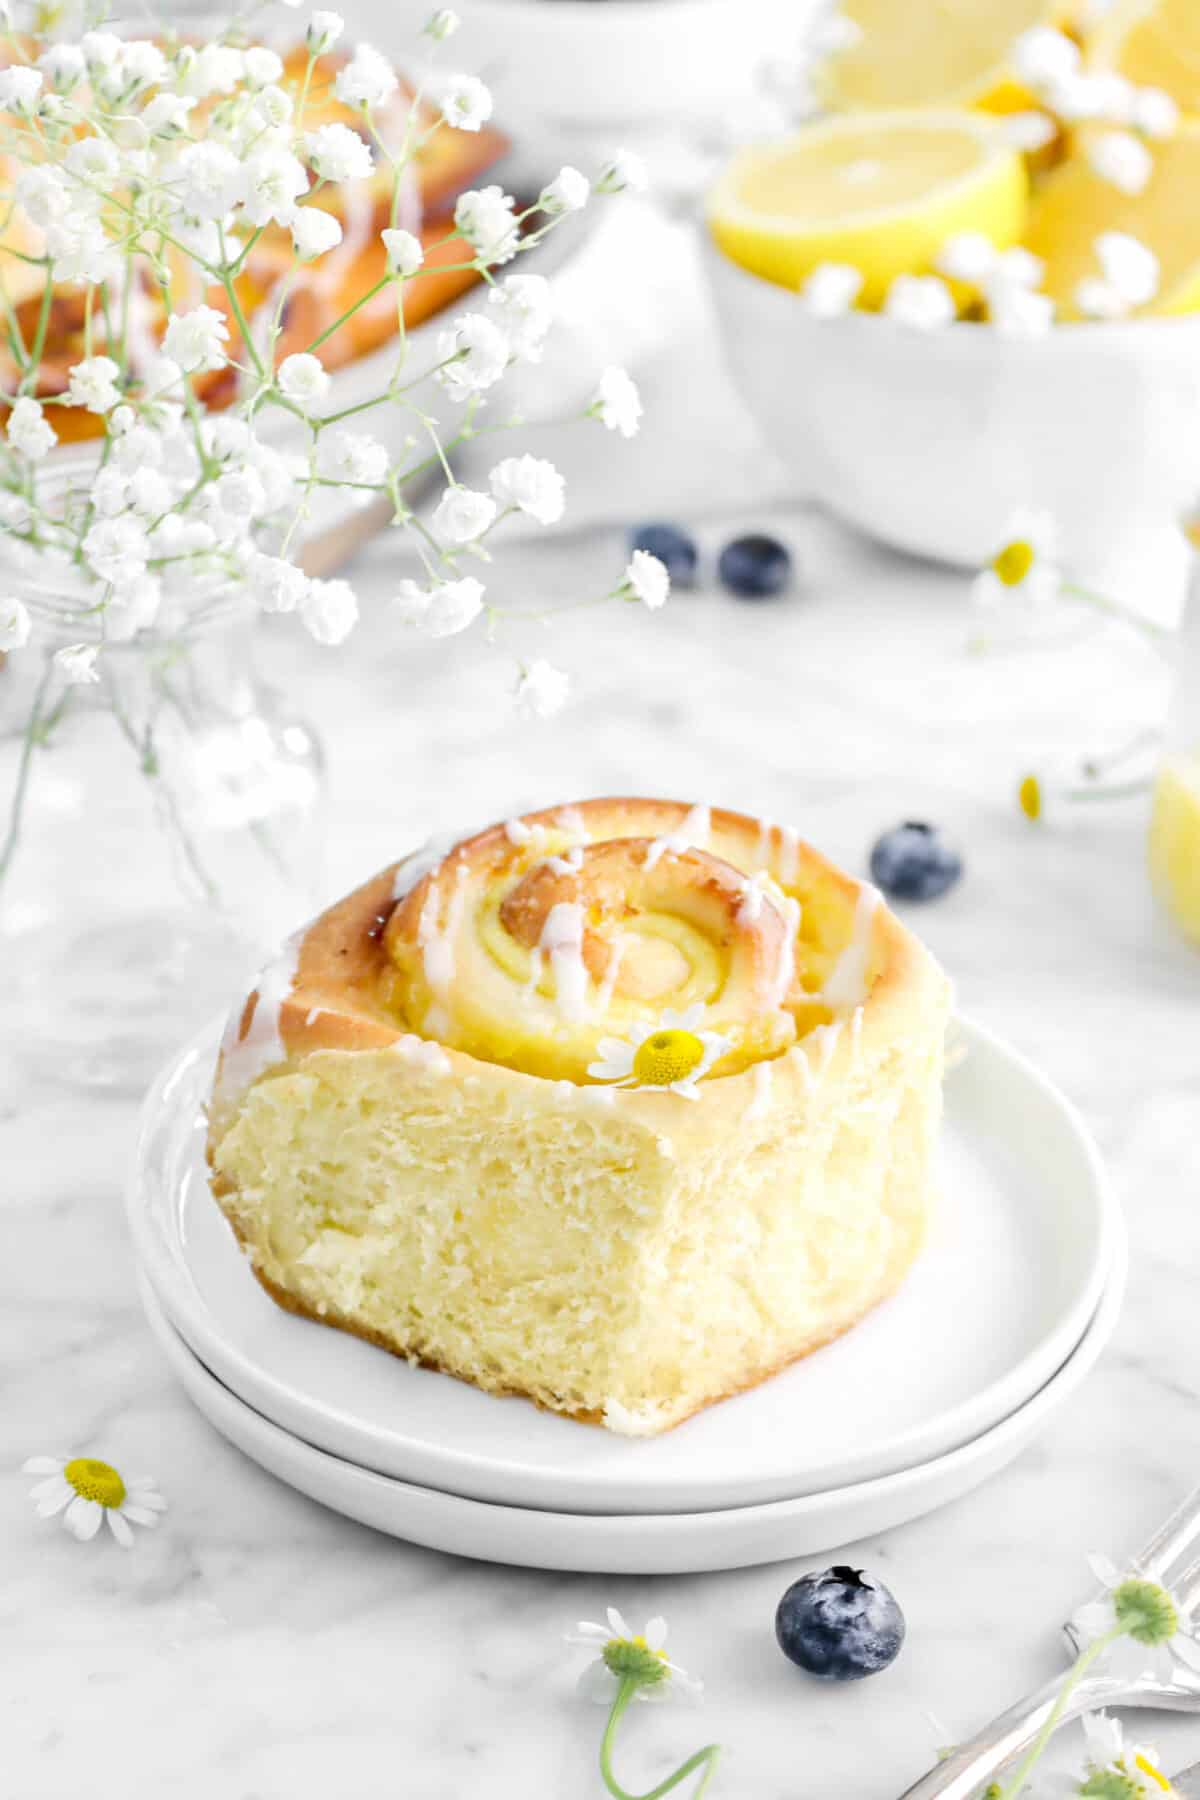 lemon roll on two plates with jar of white flowers, blueberries, and a bowl of lemons behind